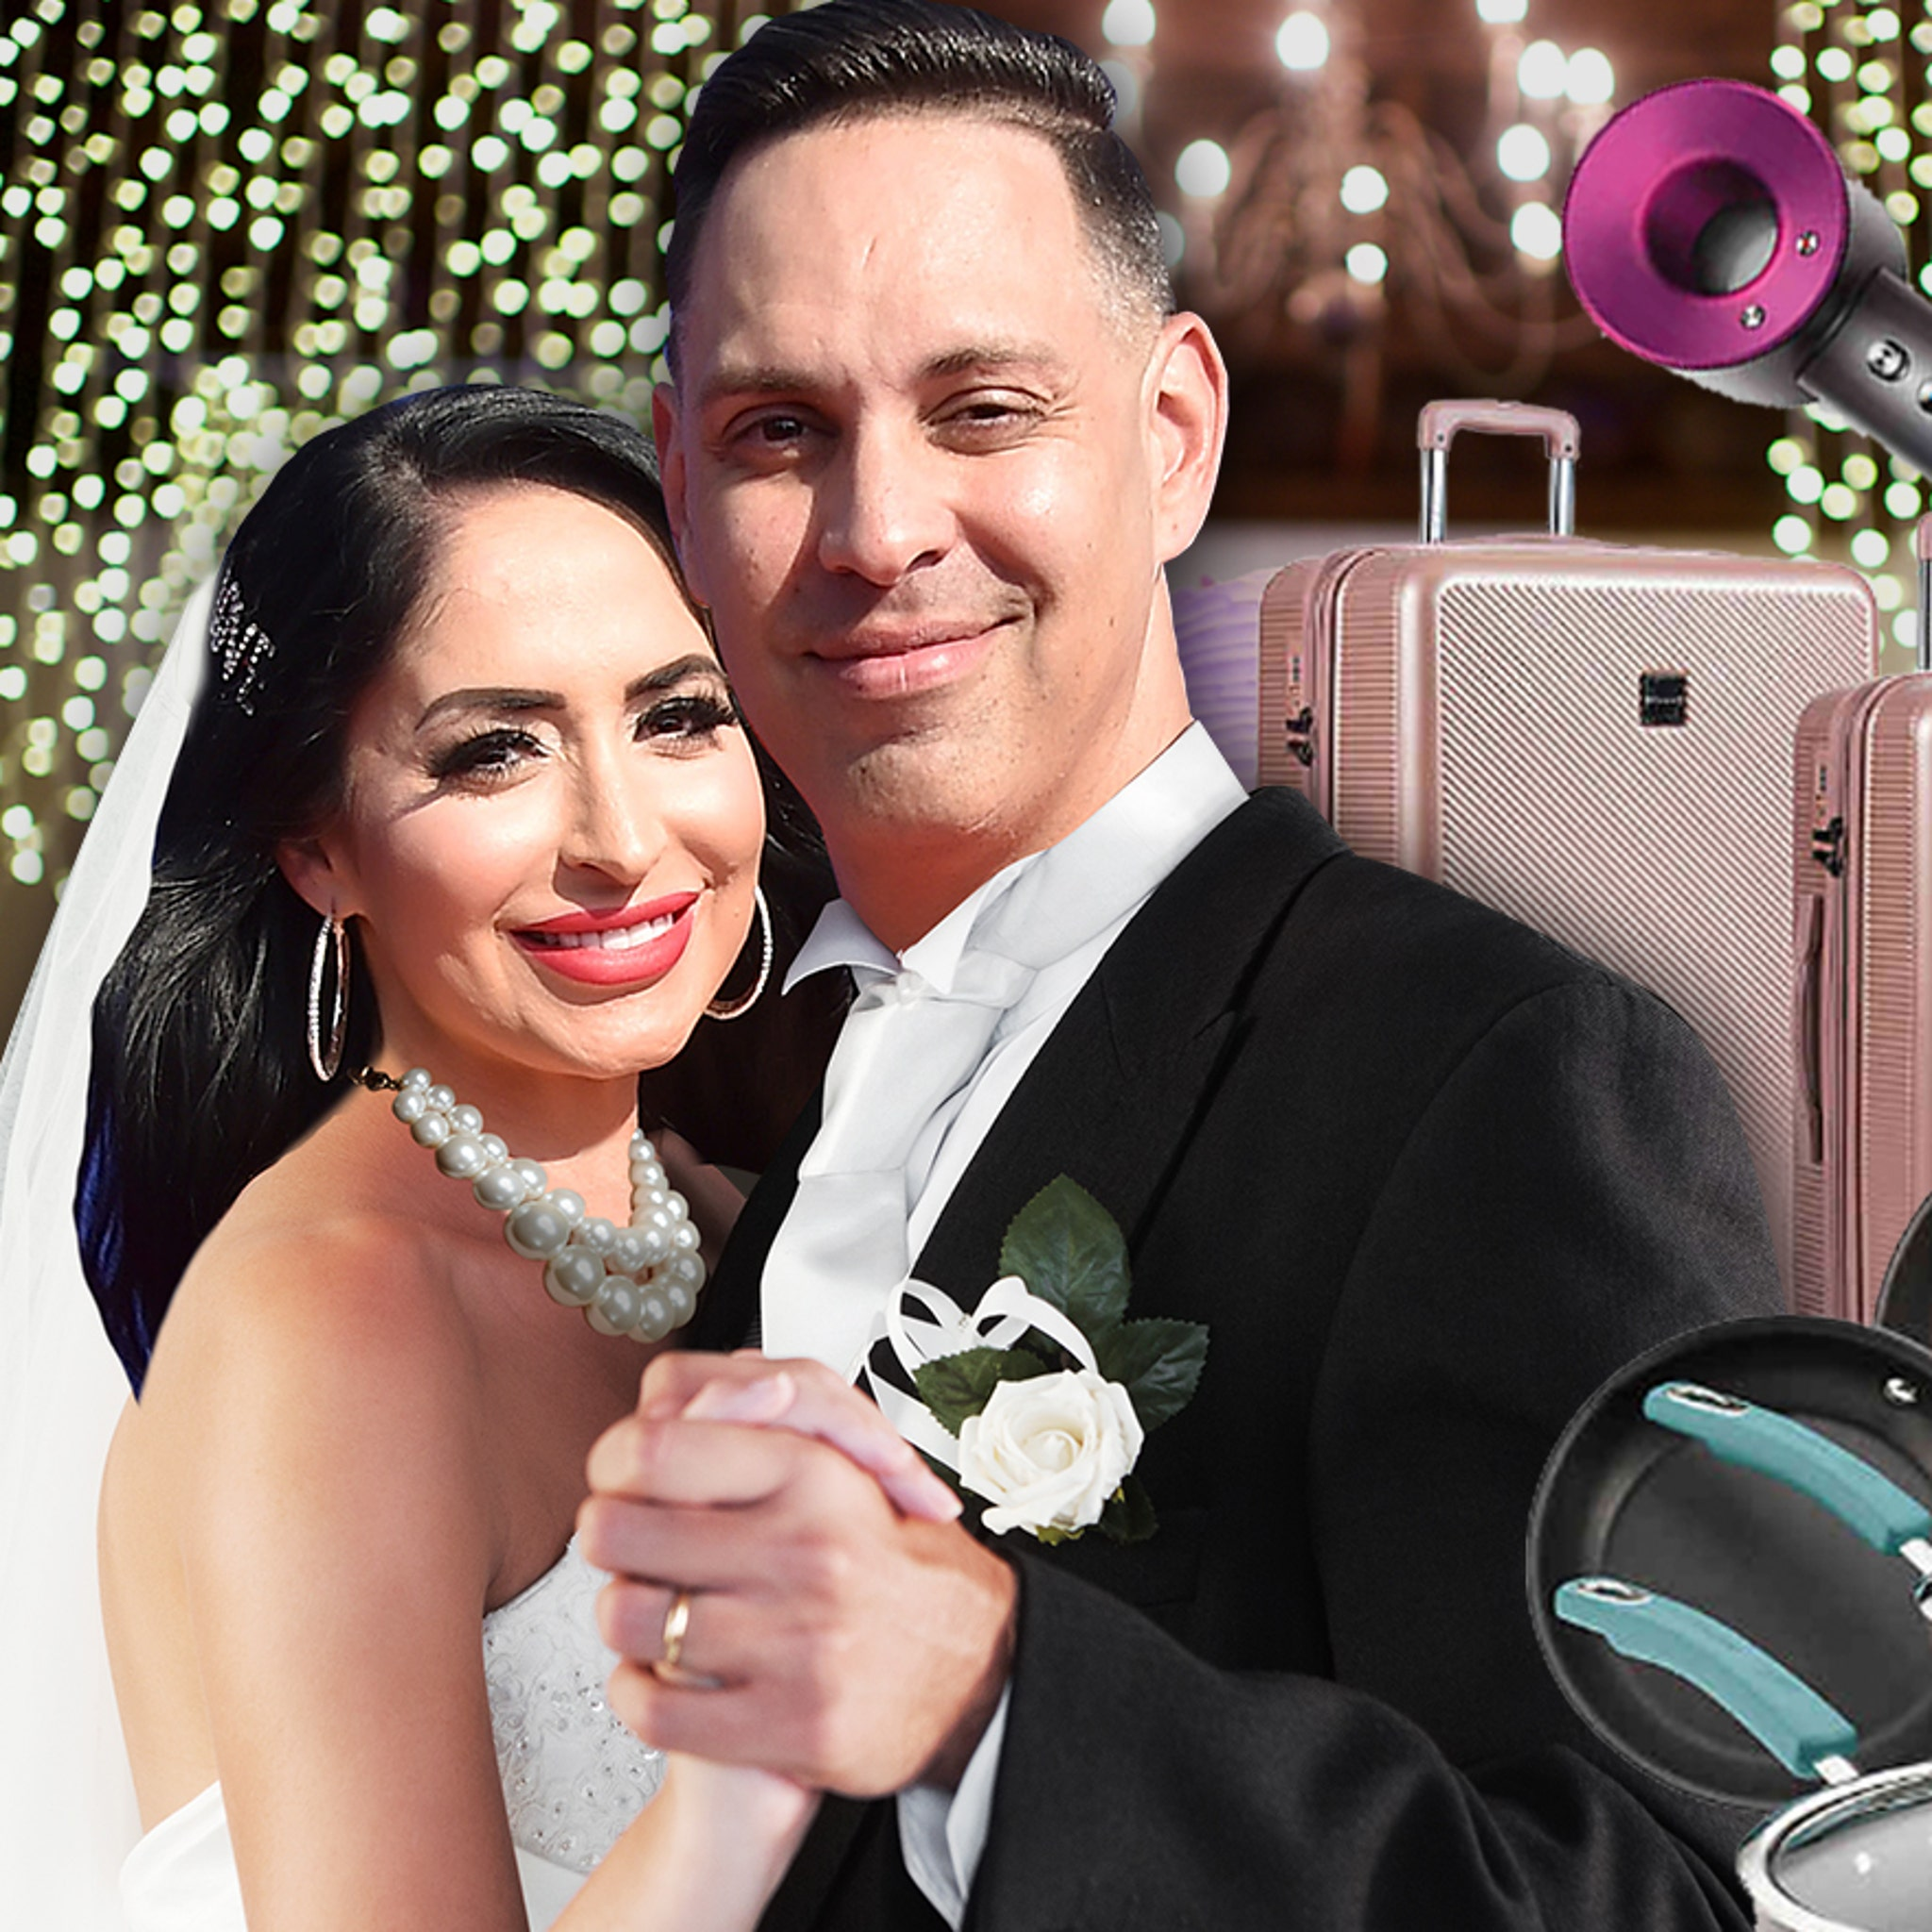 'Jersey Shore' Star Angelina Goes Above & Beyond in Wedding Registry